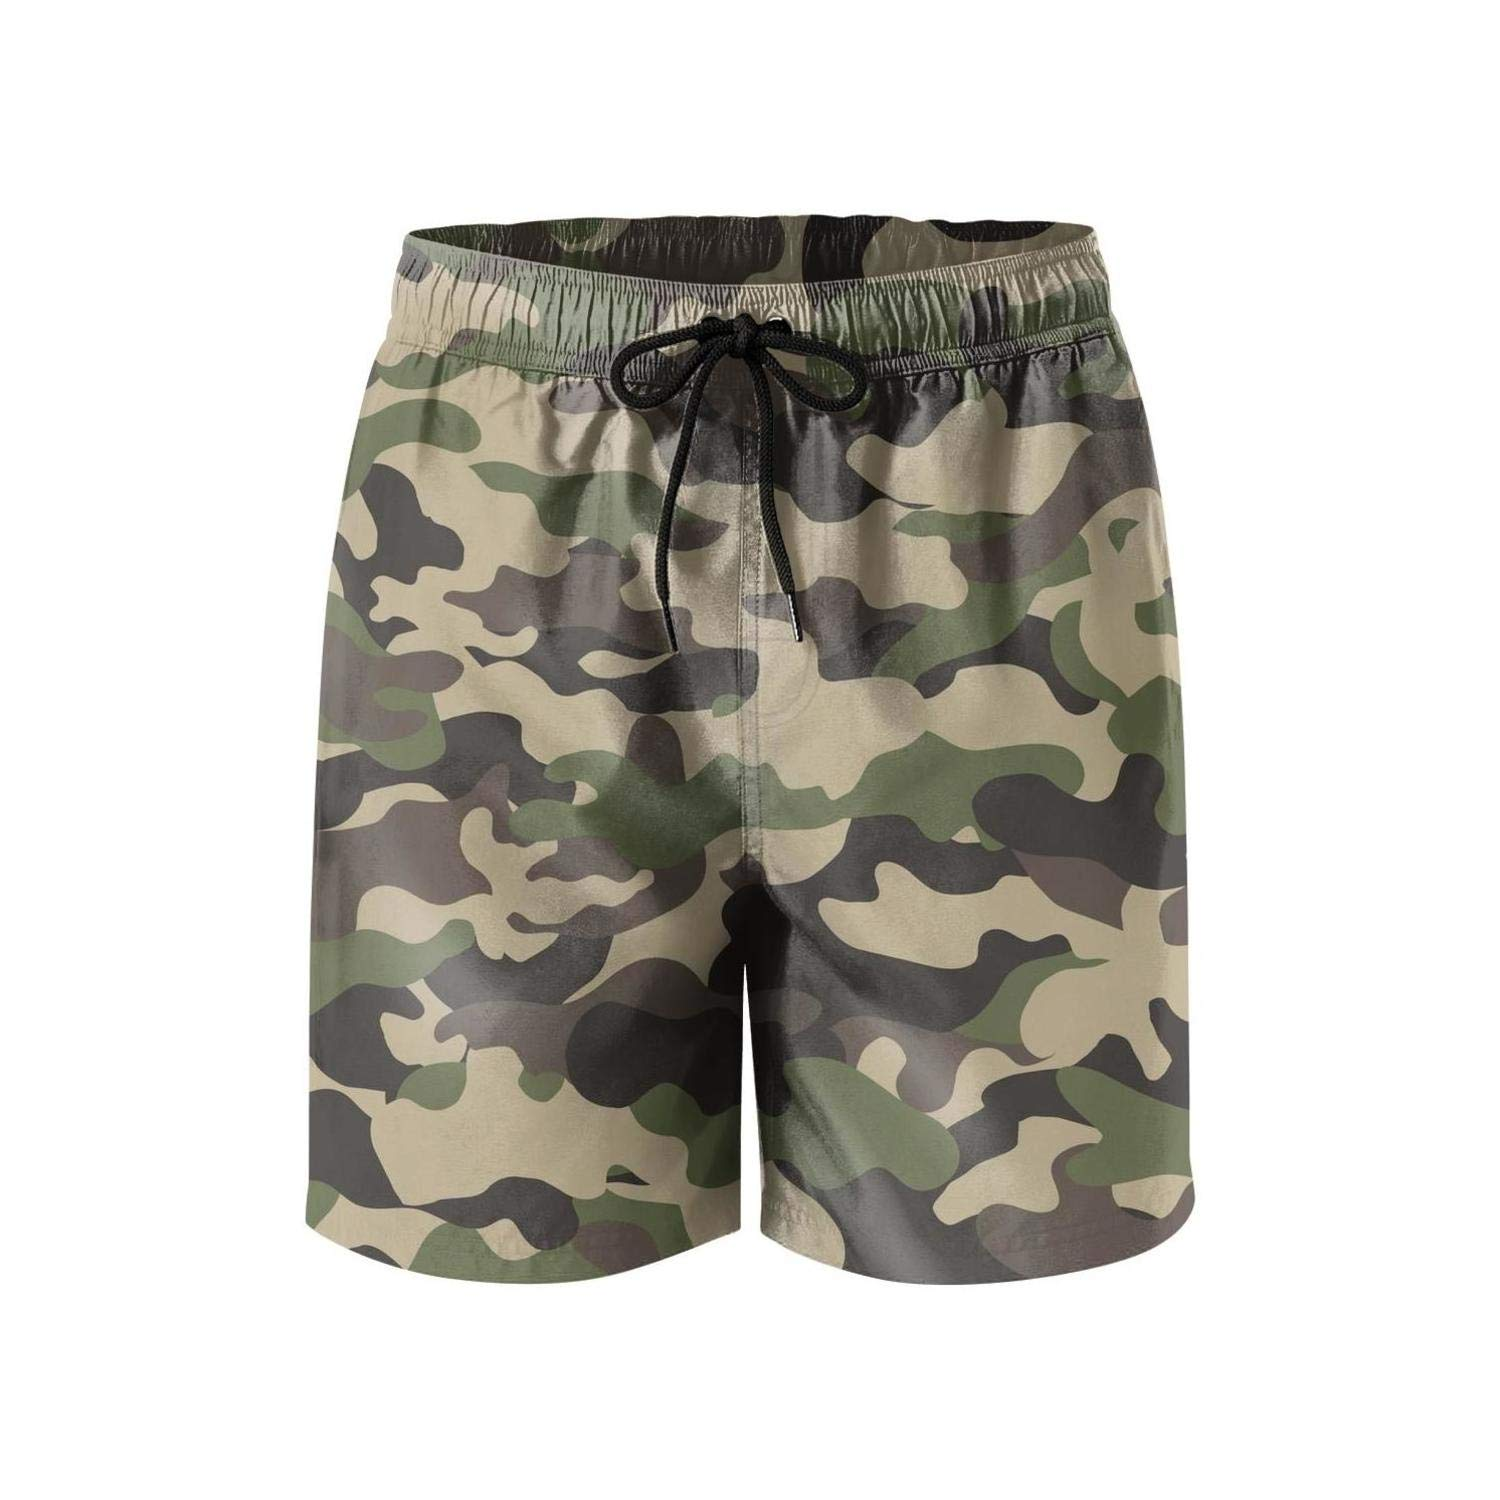 Feewearior Mens Beach Shorts Military Camouflage Swimming Trunks Quick Dry Pants Surfing